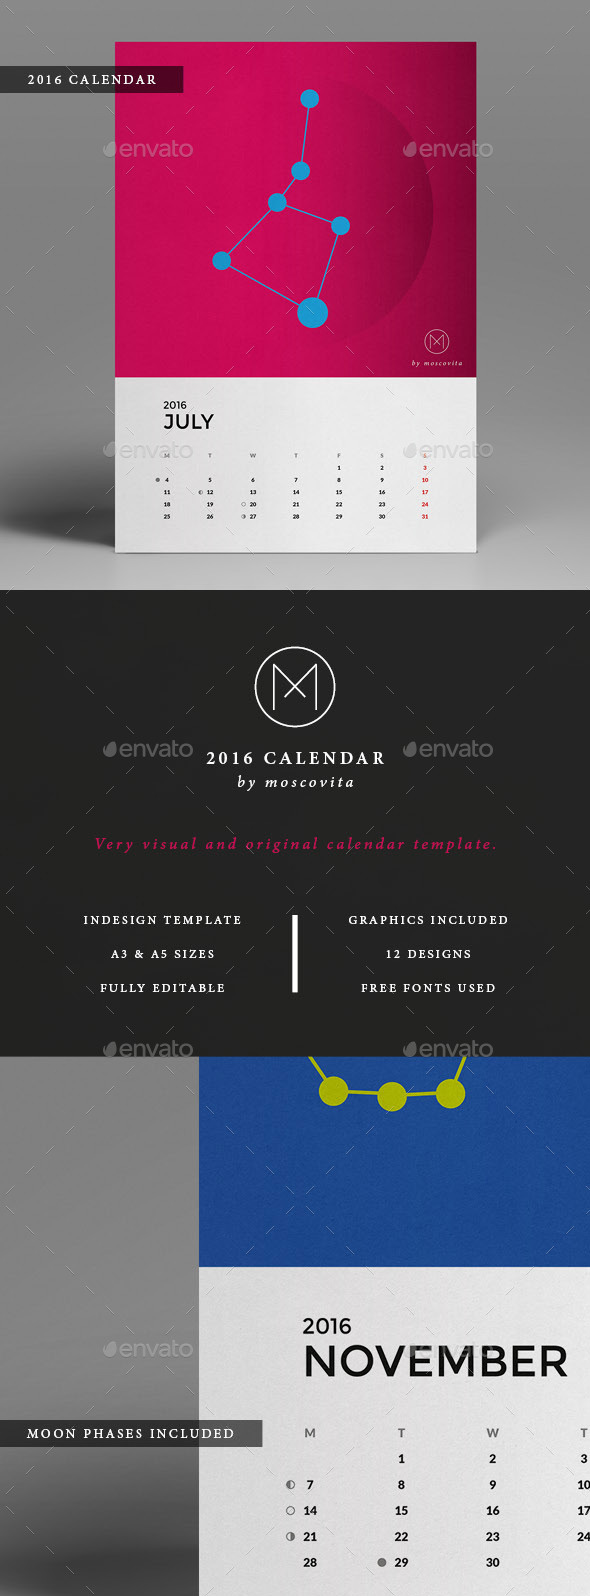 Creative Brandable 2016 Calendar Template